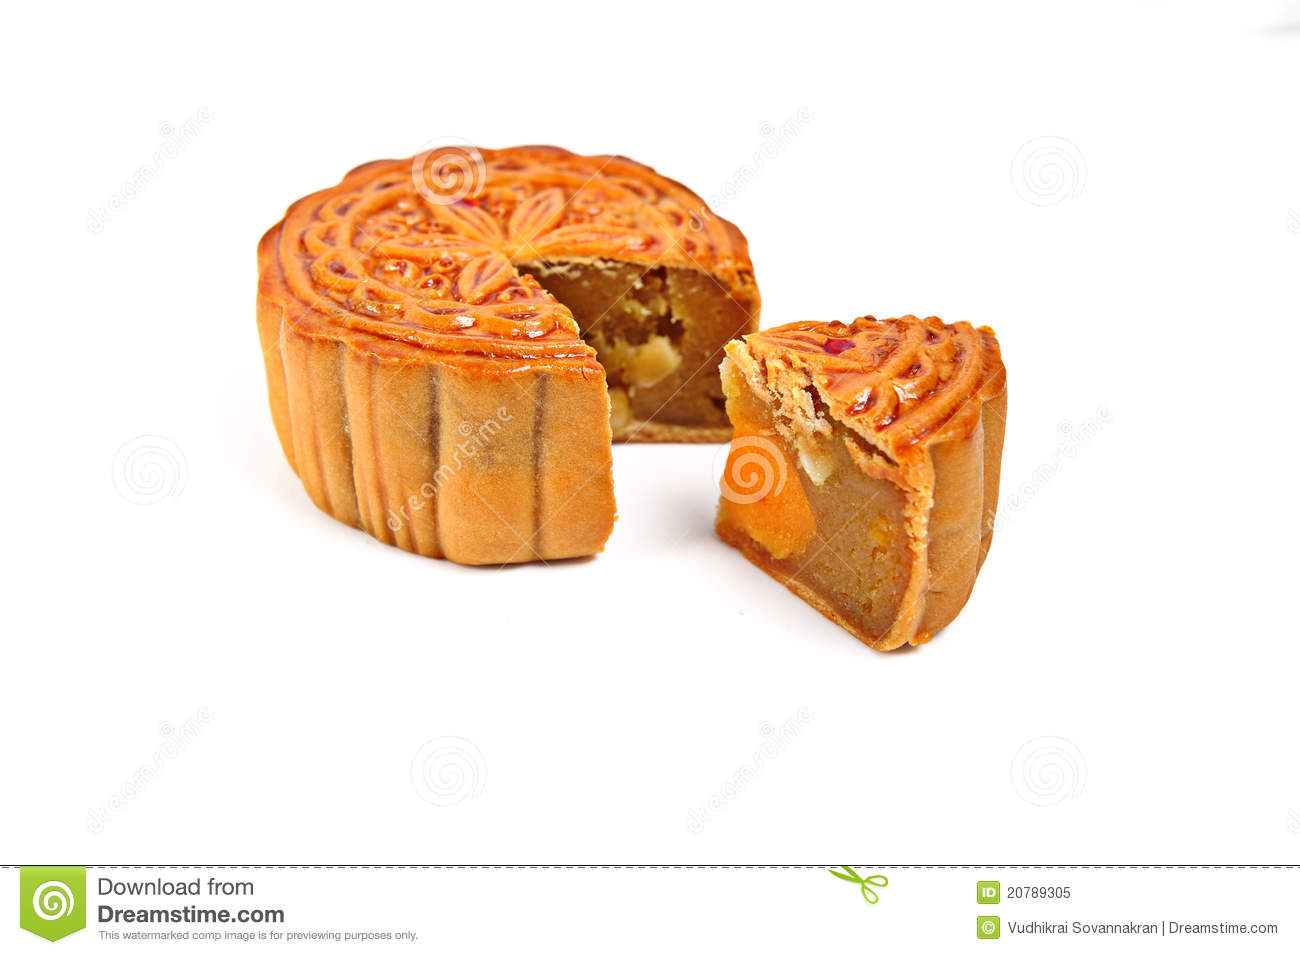 Moon Cake Clip Art : Chinese Moon Cake Royalty Free Stock Photo - Image: 20789305